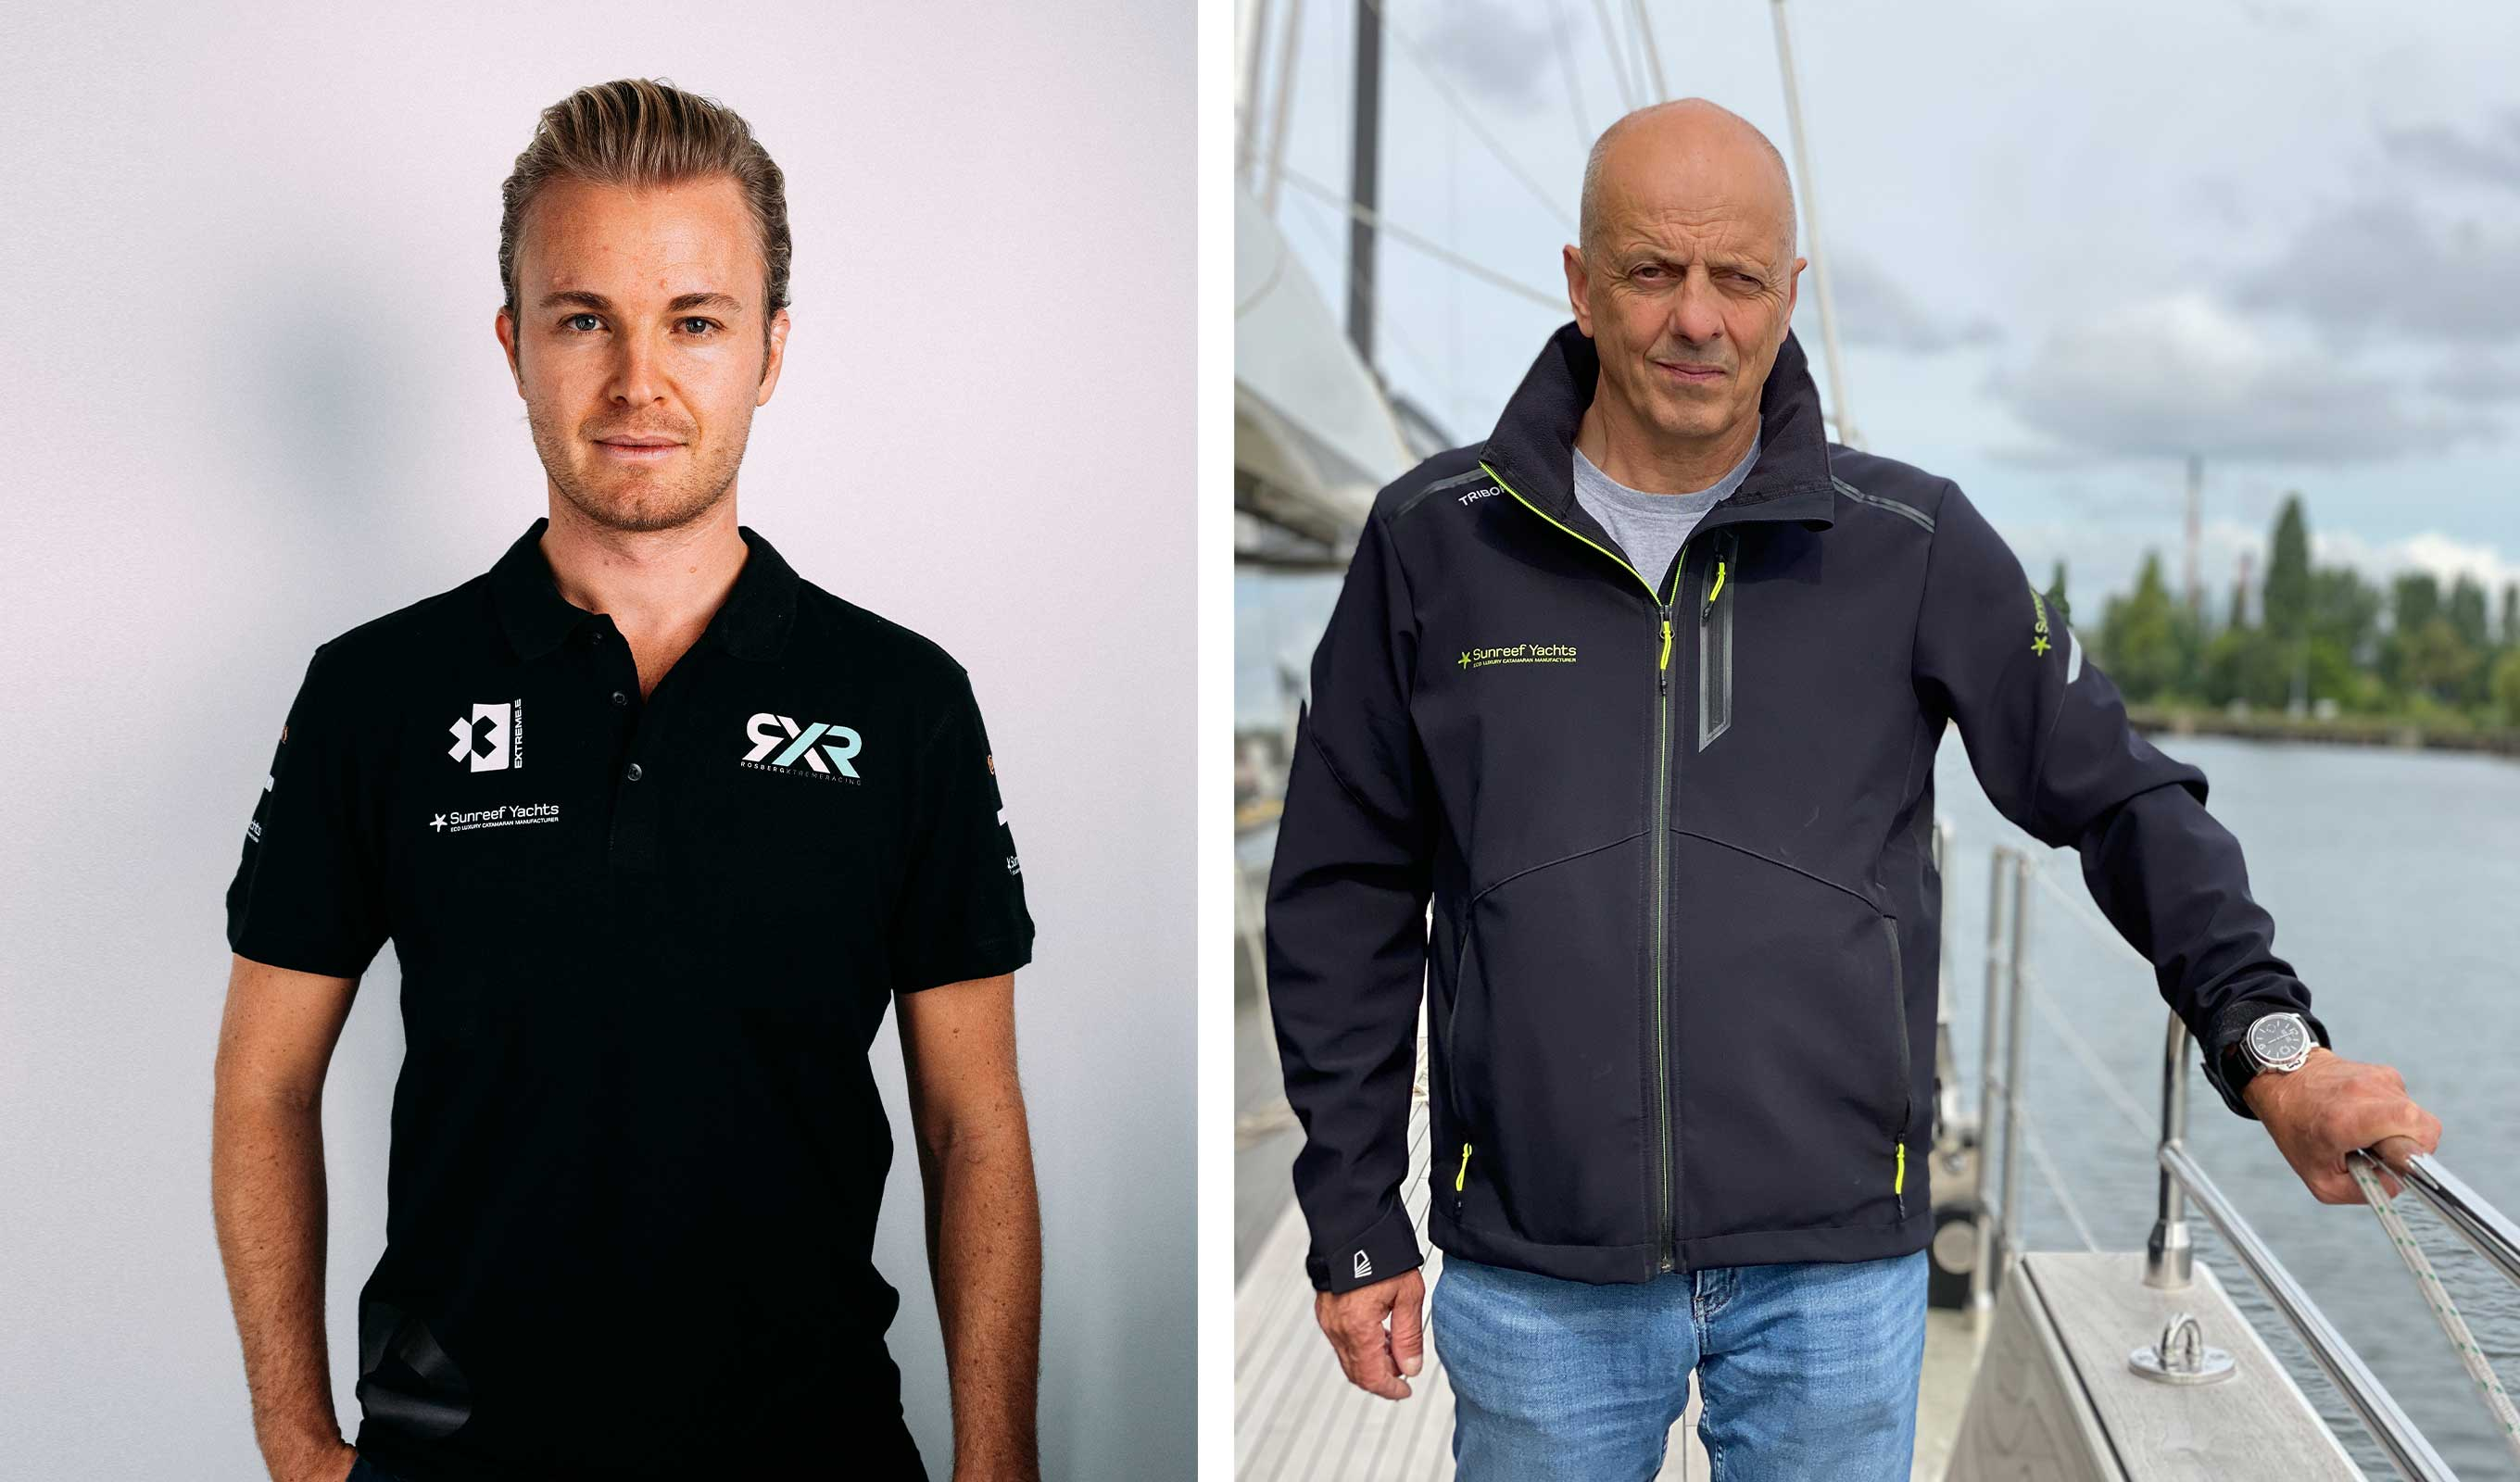 Sunreef Yachts joins Rosberg Xtreme Racing Team